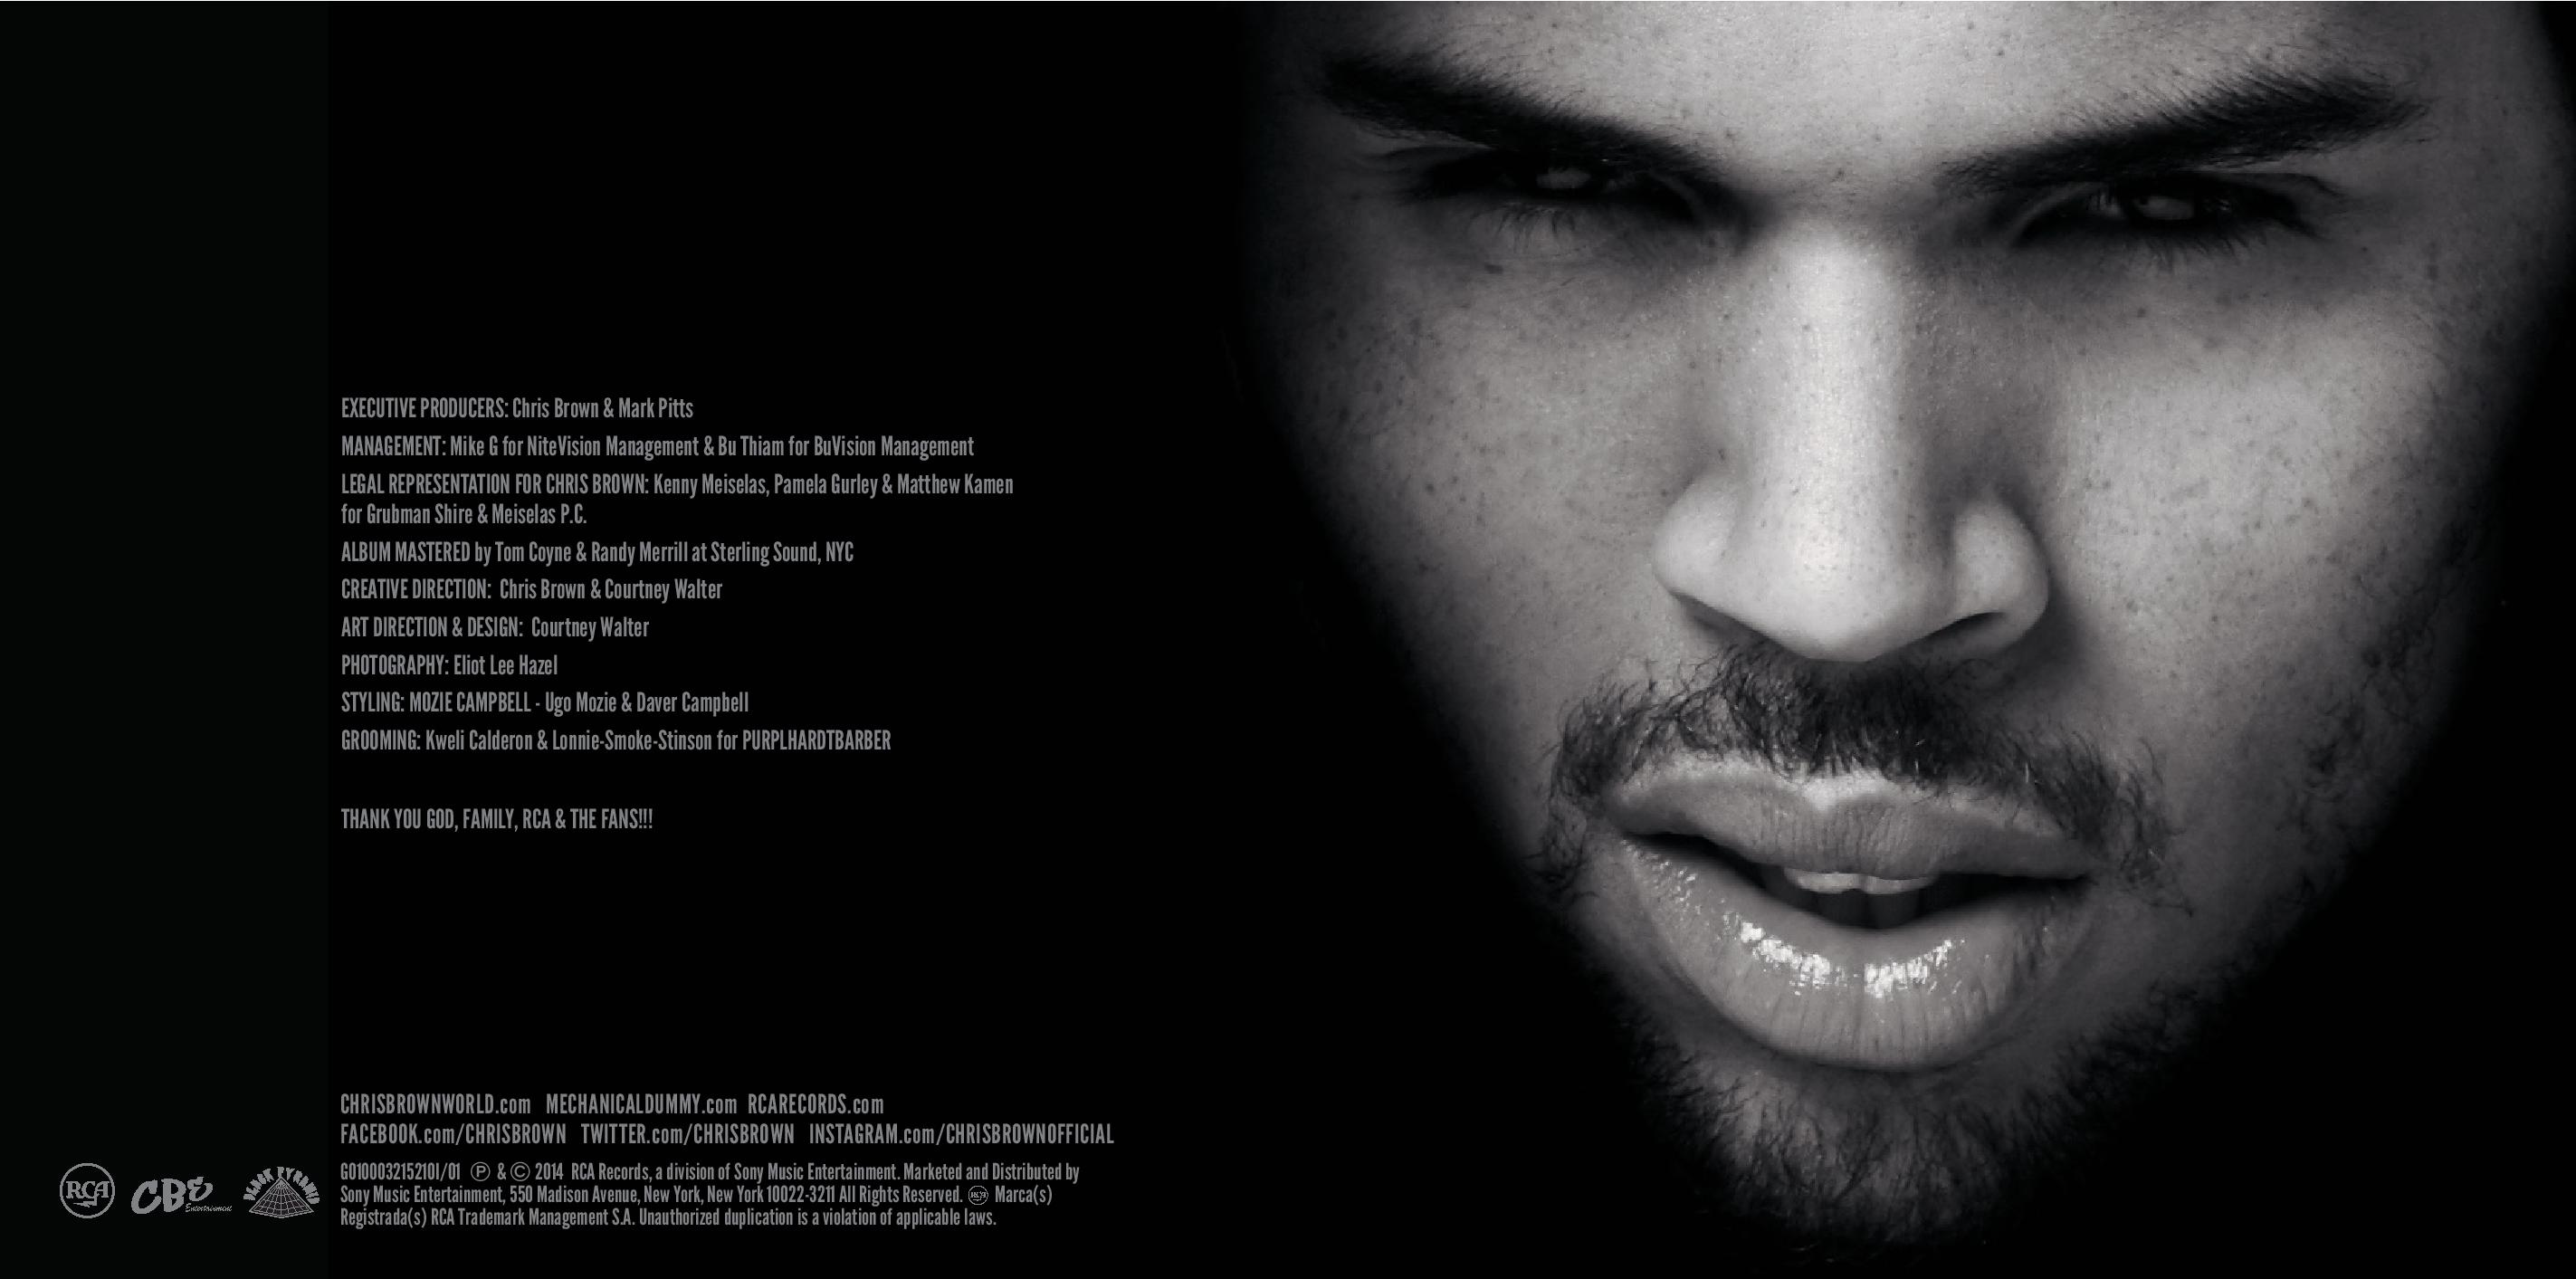 chris brown x deluxe edition - photo #24